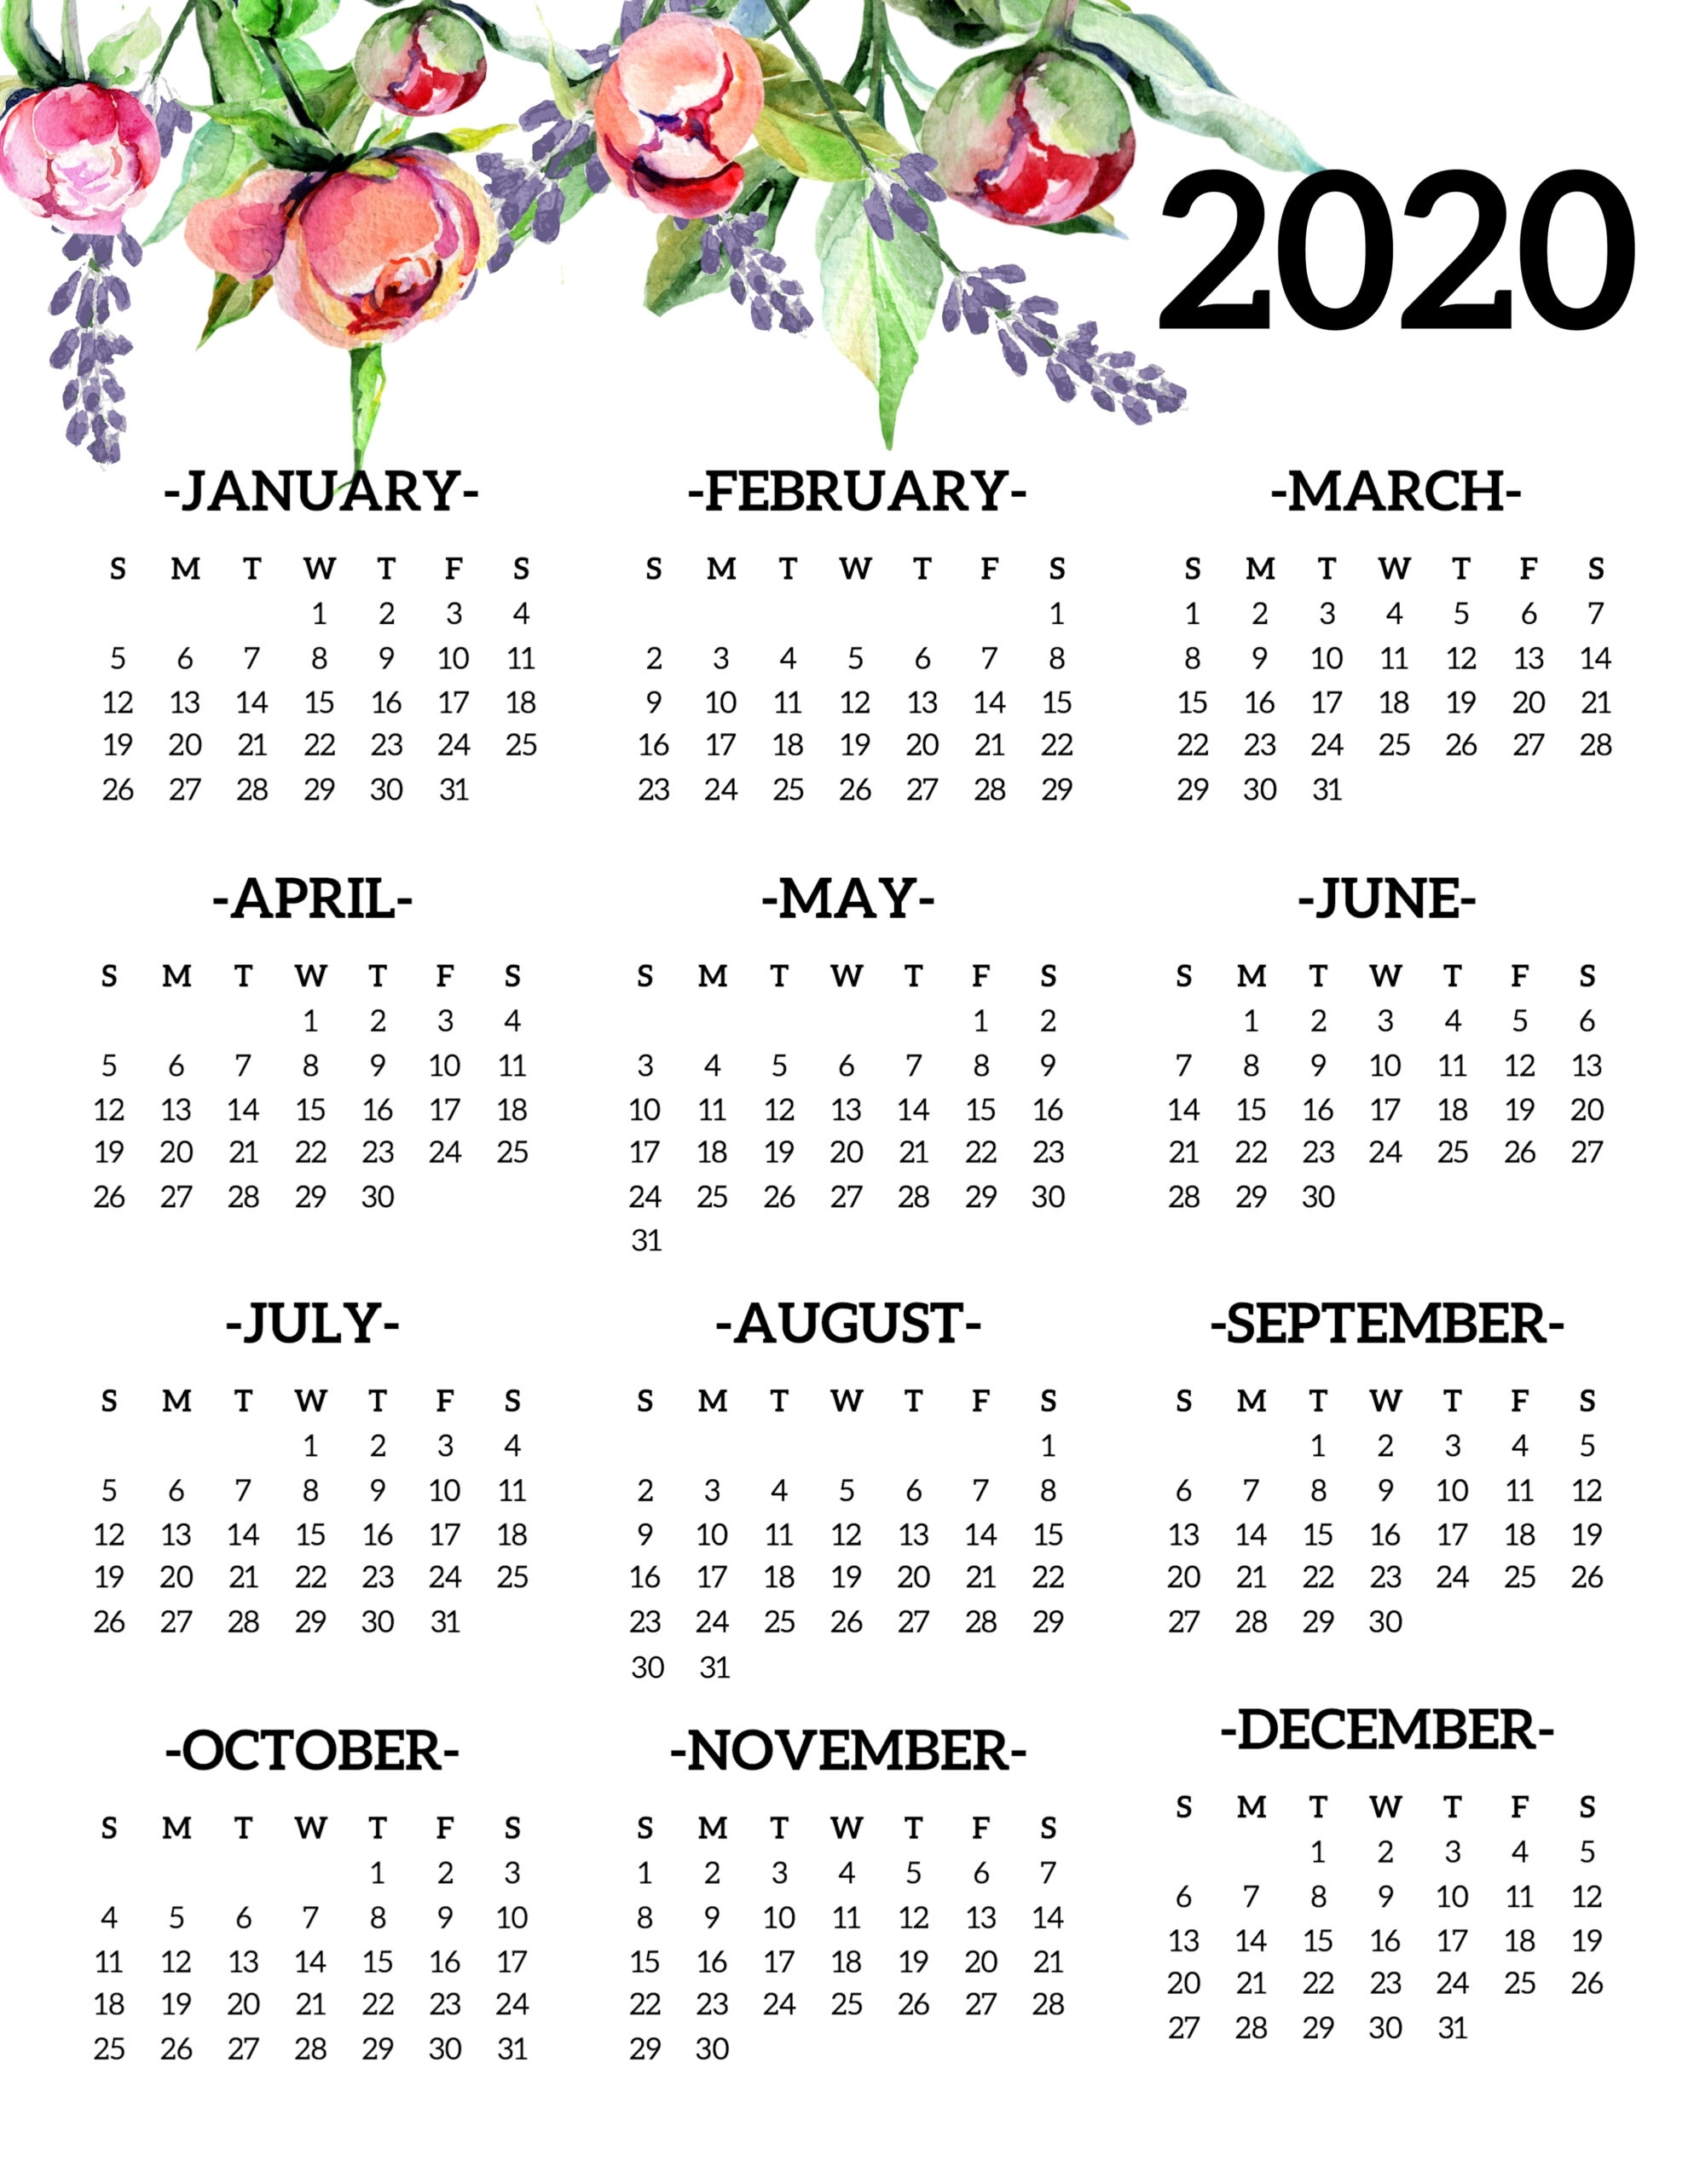 Free Printable 2020 Calendar Yearly One Page Floral - Paper for Print Free Calendars 2020Without Downloading